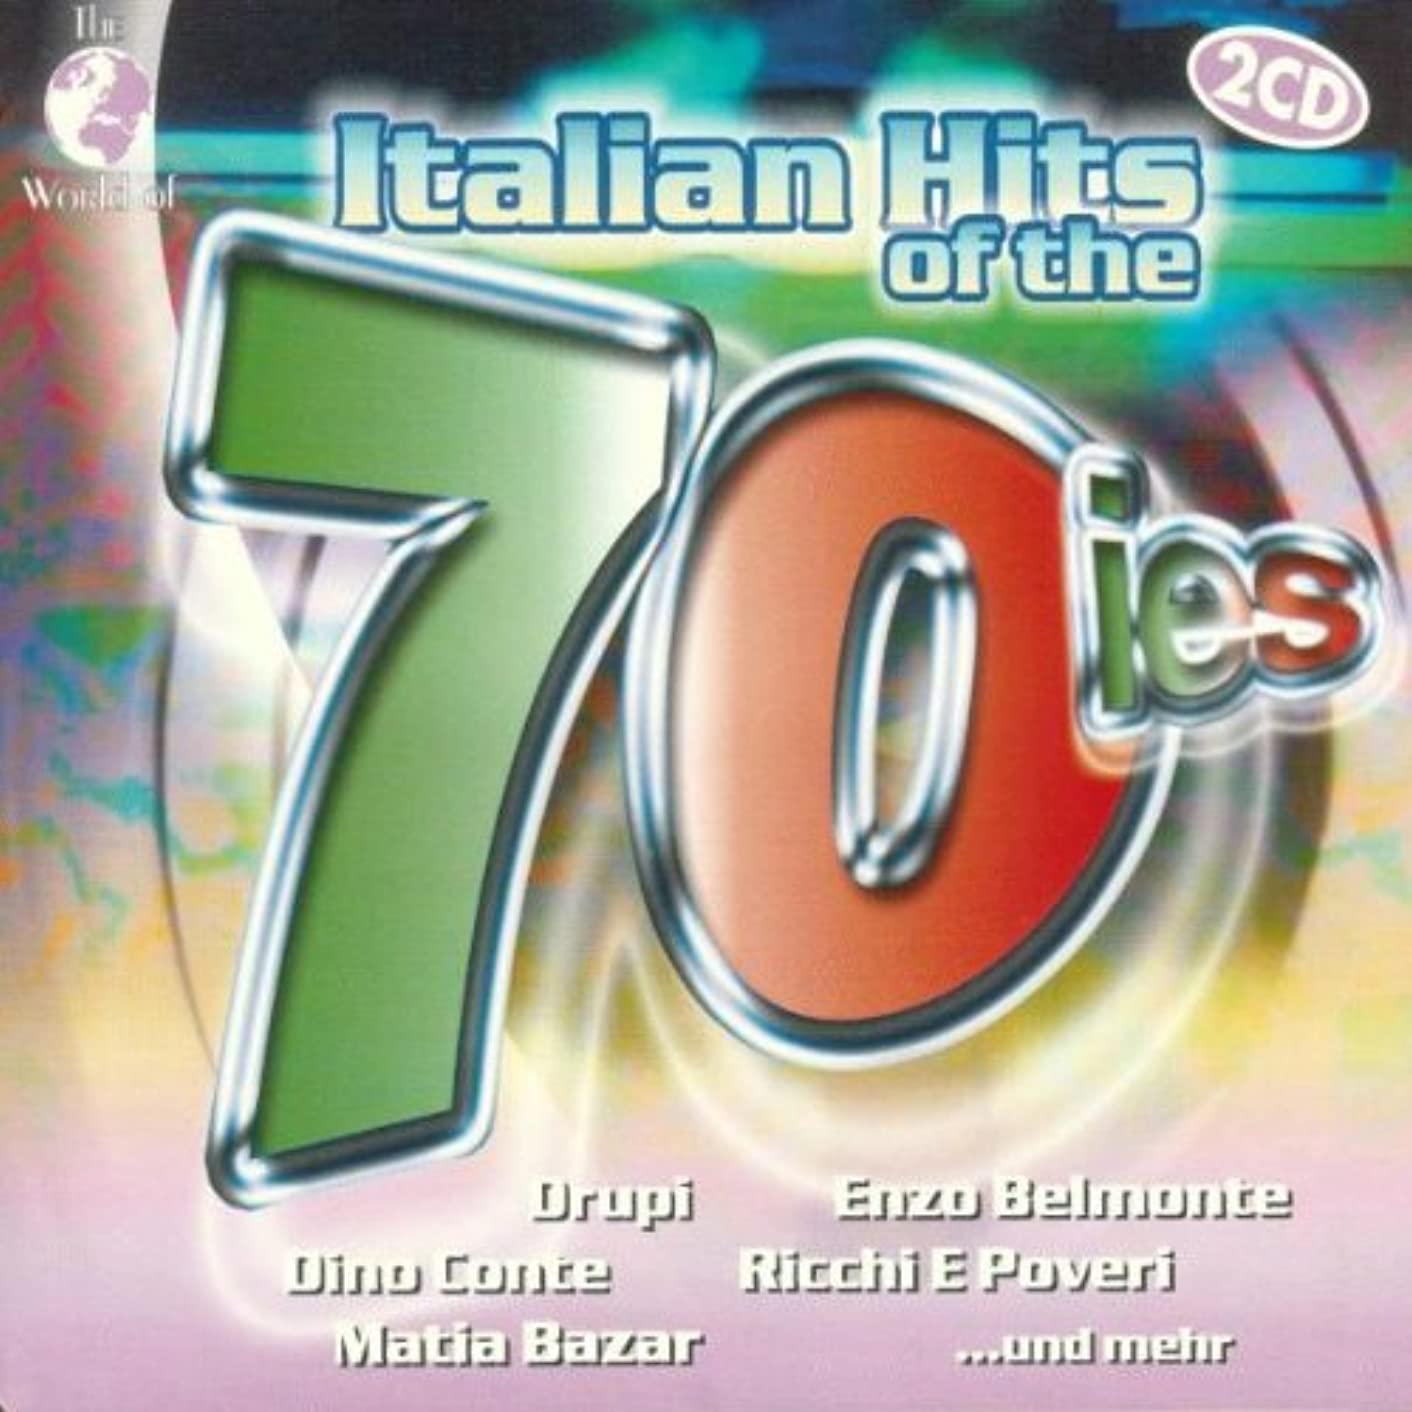 World of Italian Hits of the 70ie